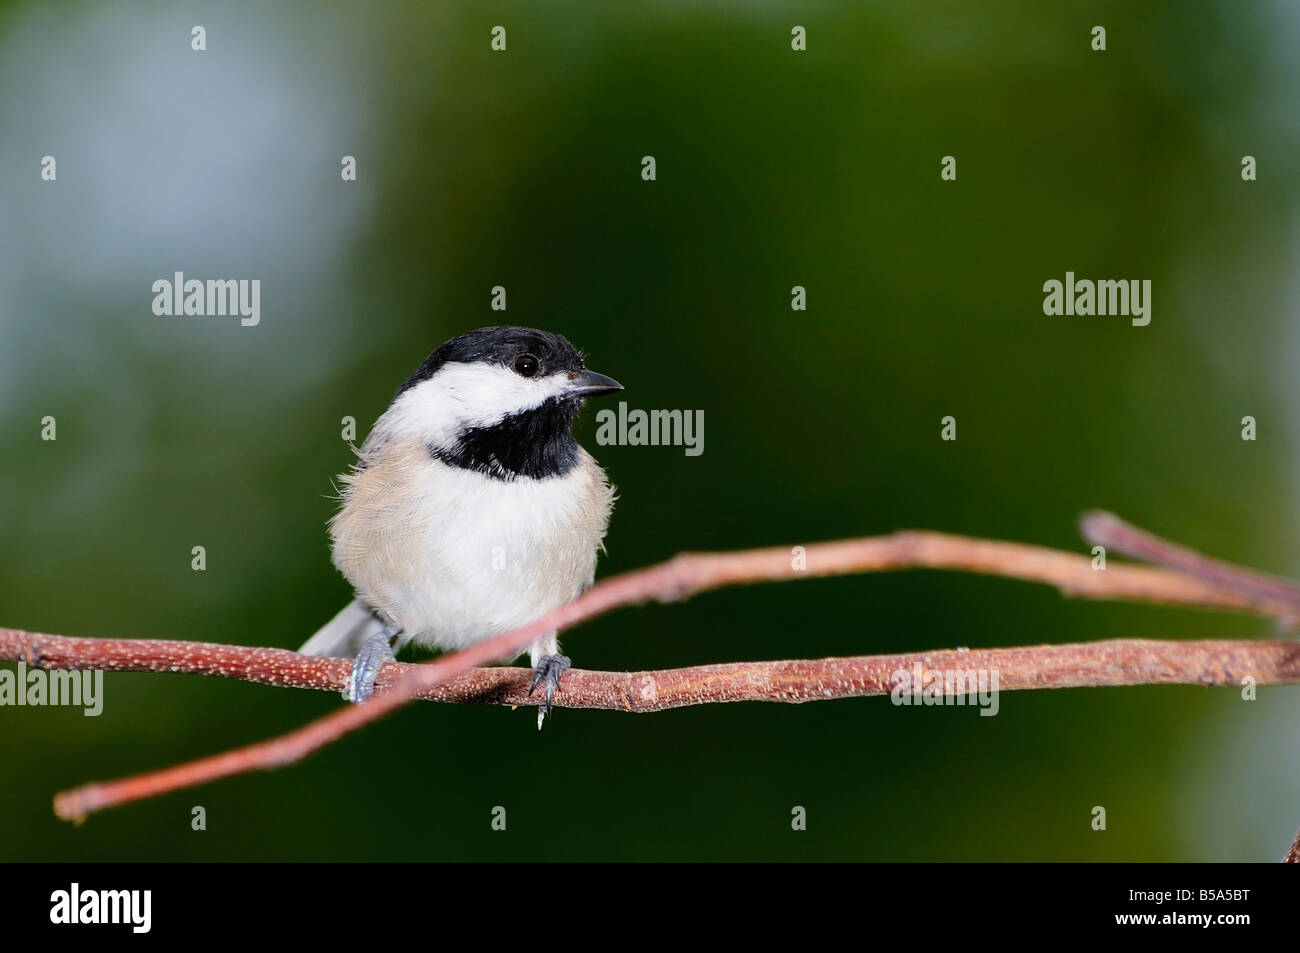 A Black-capped Chickadee, Poecile atricapilla, perches on a bare branch in Oklahoma, USA. - Stock Image